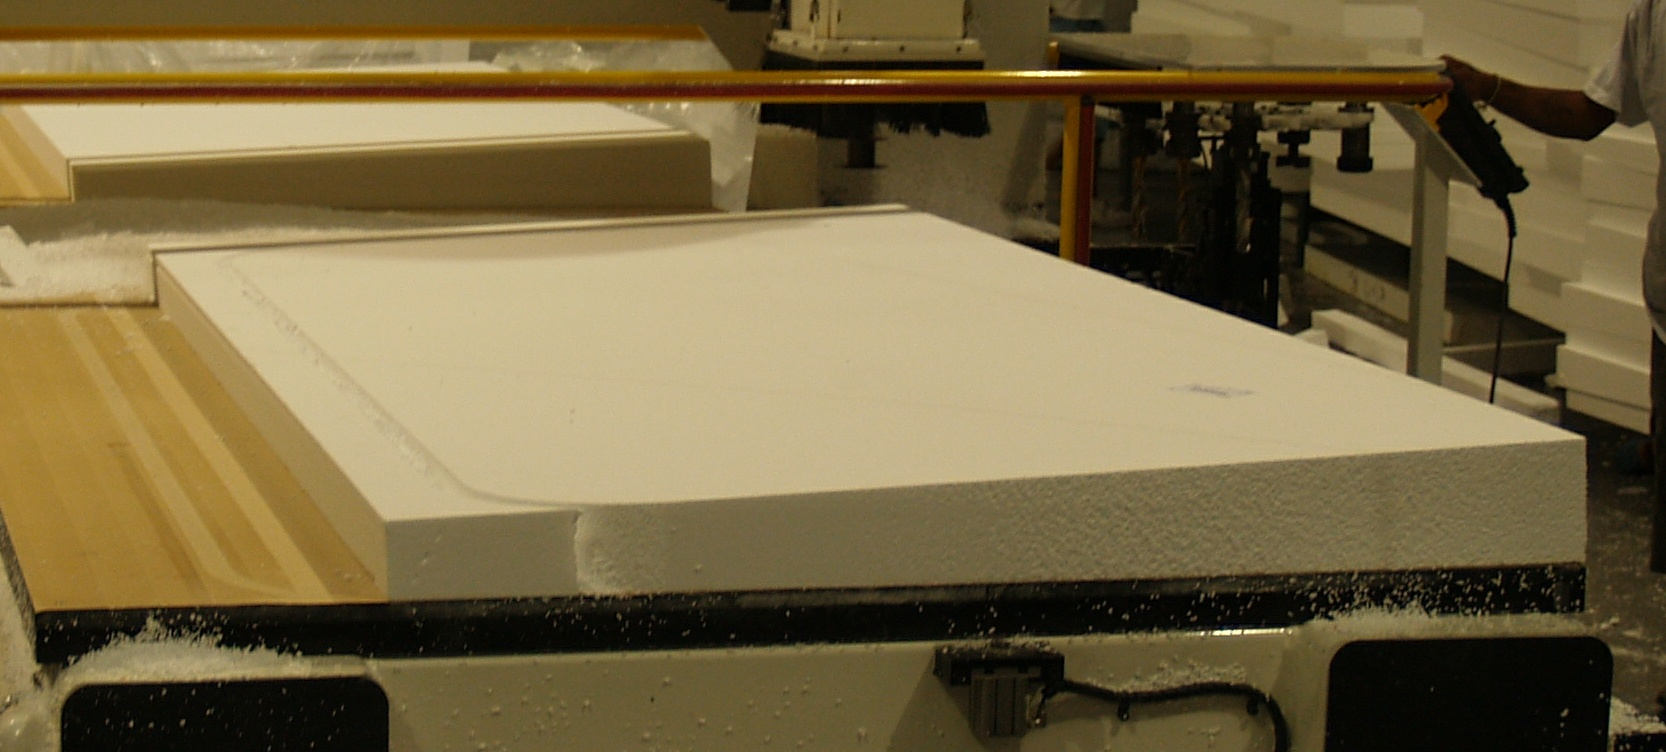 Density Foam Density Foam Blocks